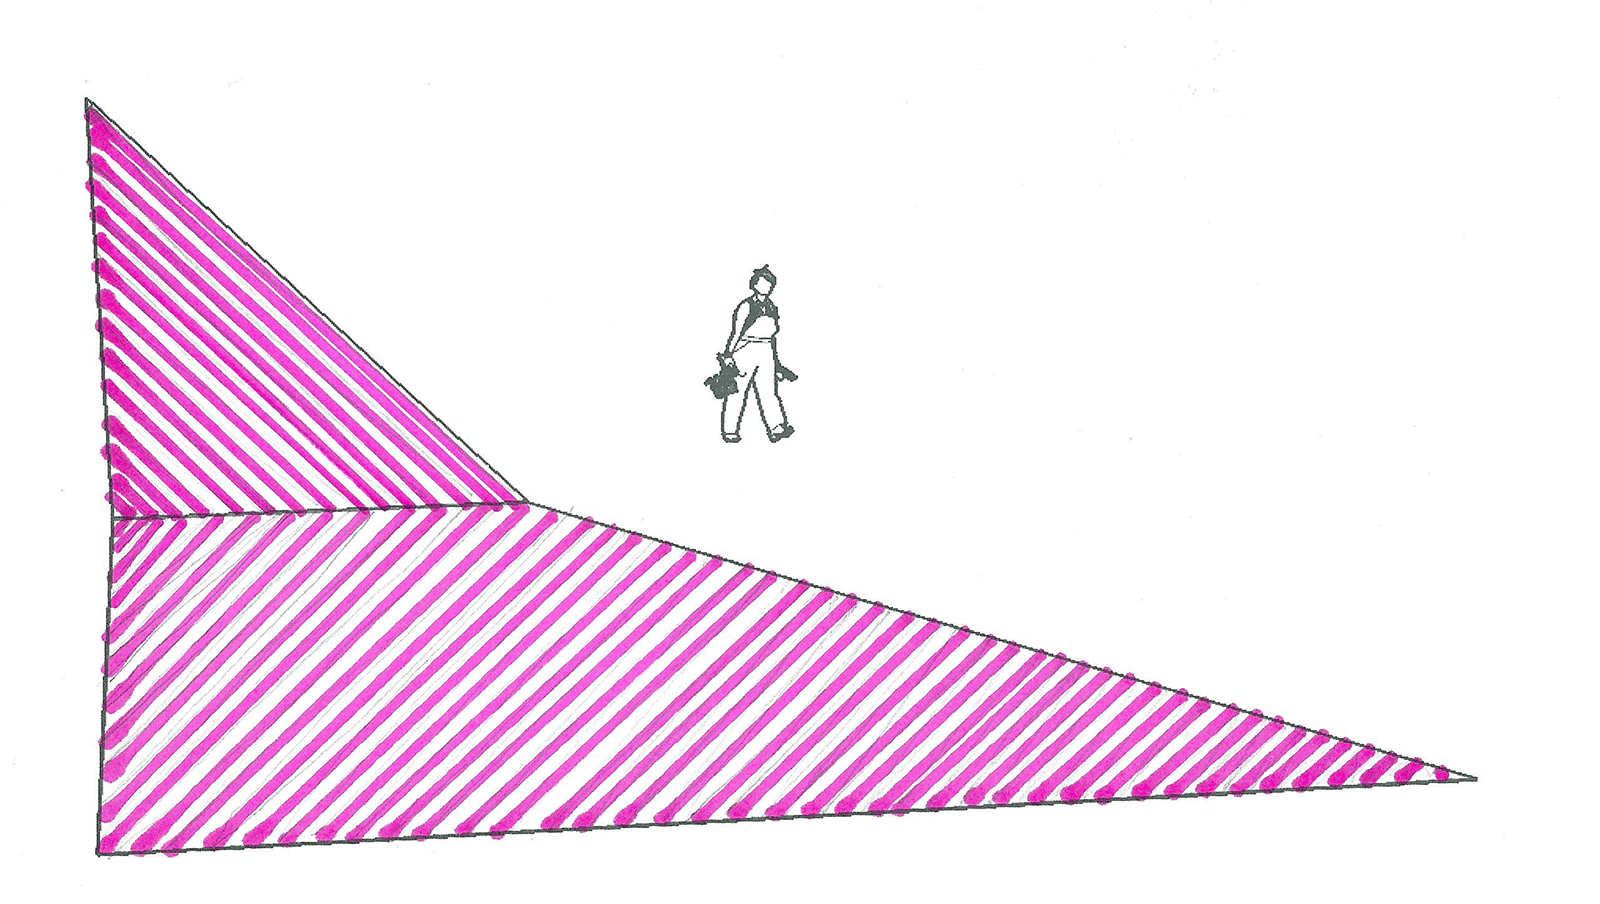 Sketch of a person walking in space alongside a large geometric shape composed of pink lines